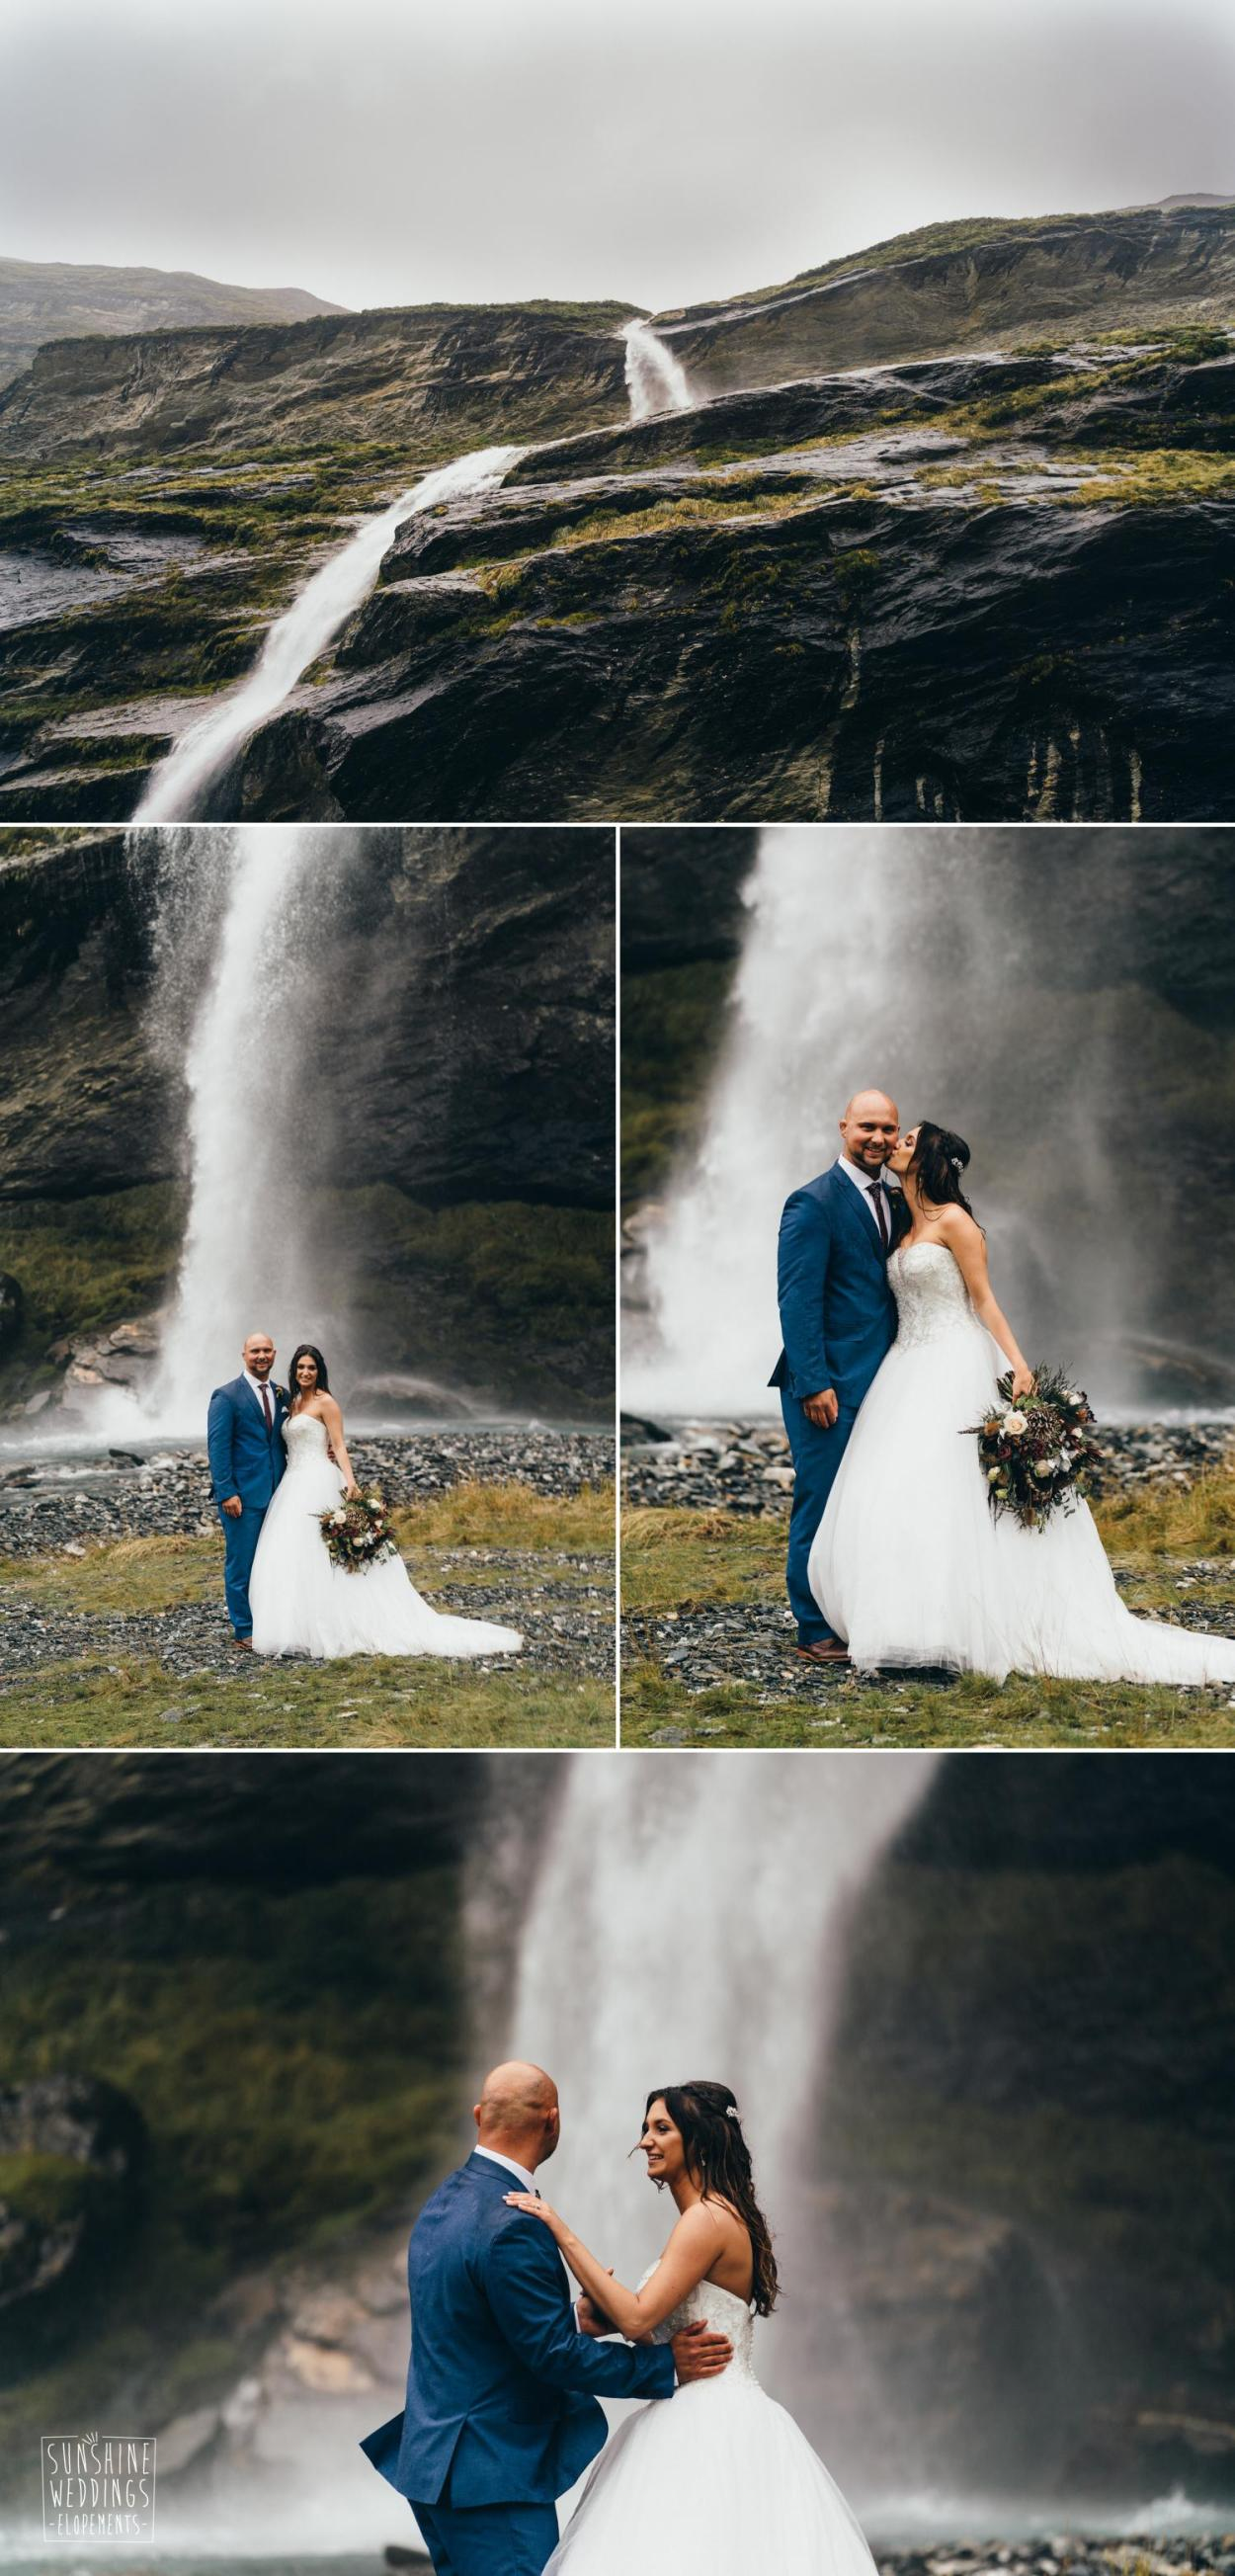 Waterfall wedding photograph